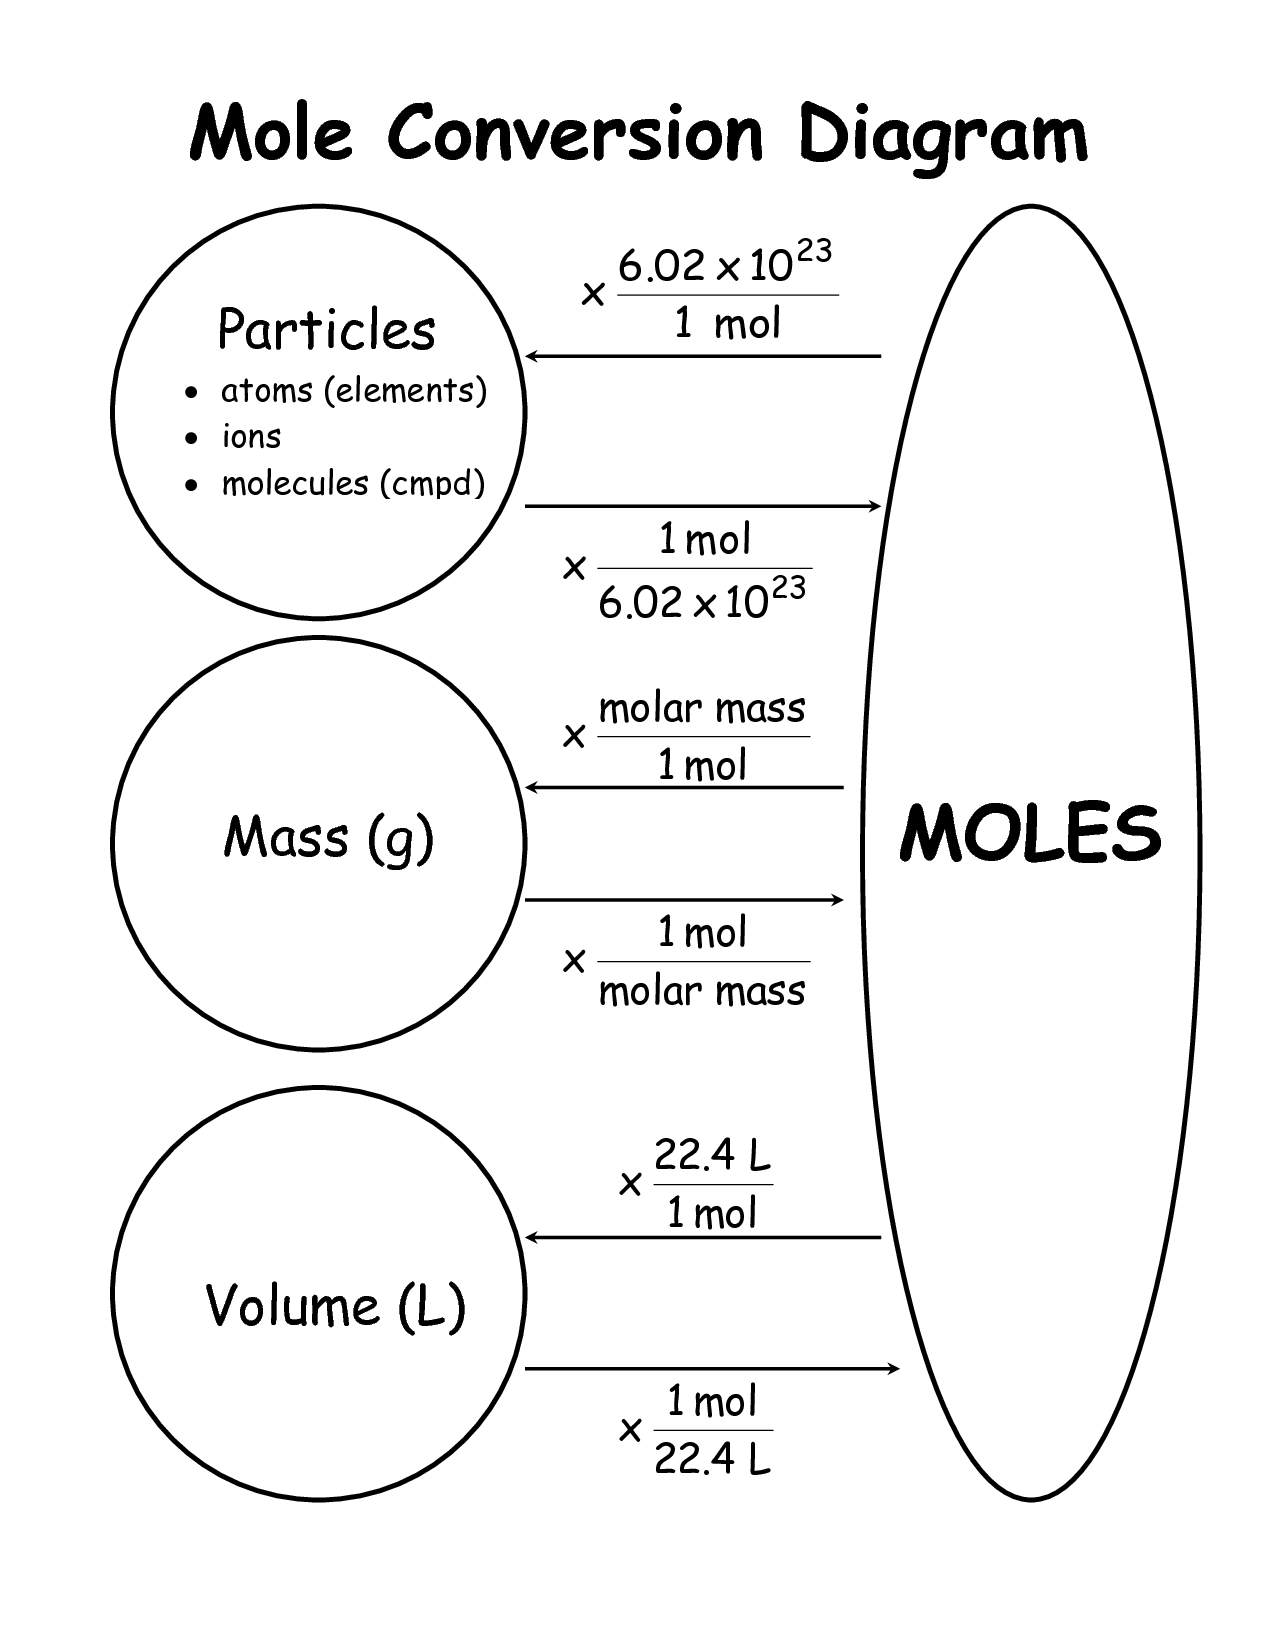 Graphic organizer for mole conversion problems. #mole #